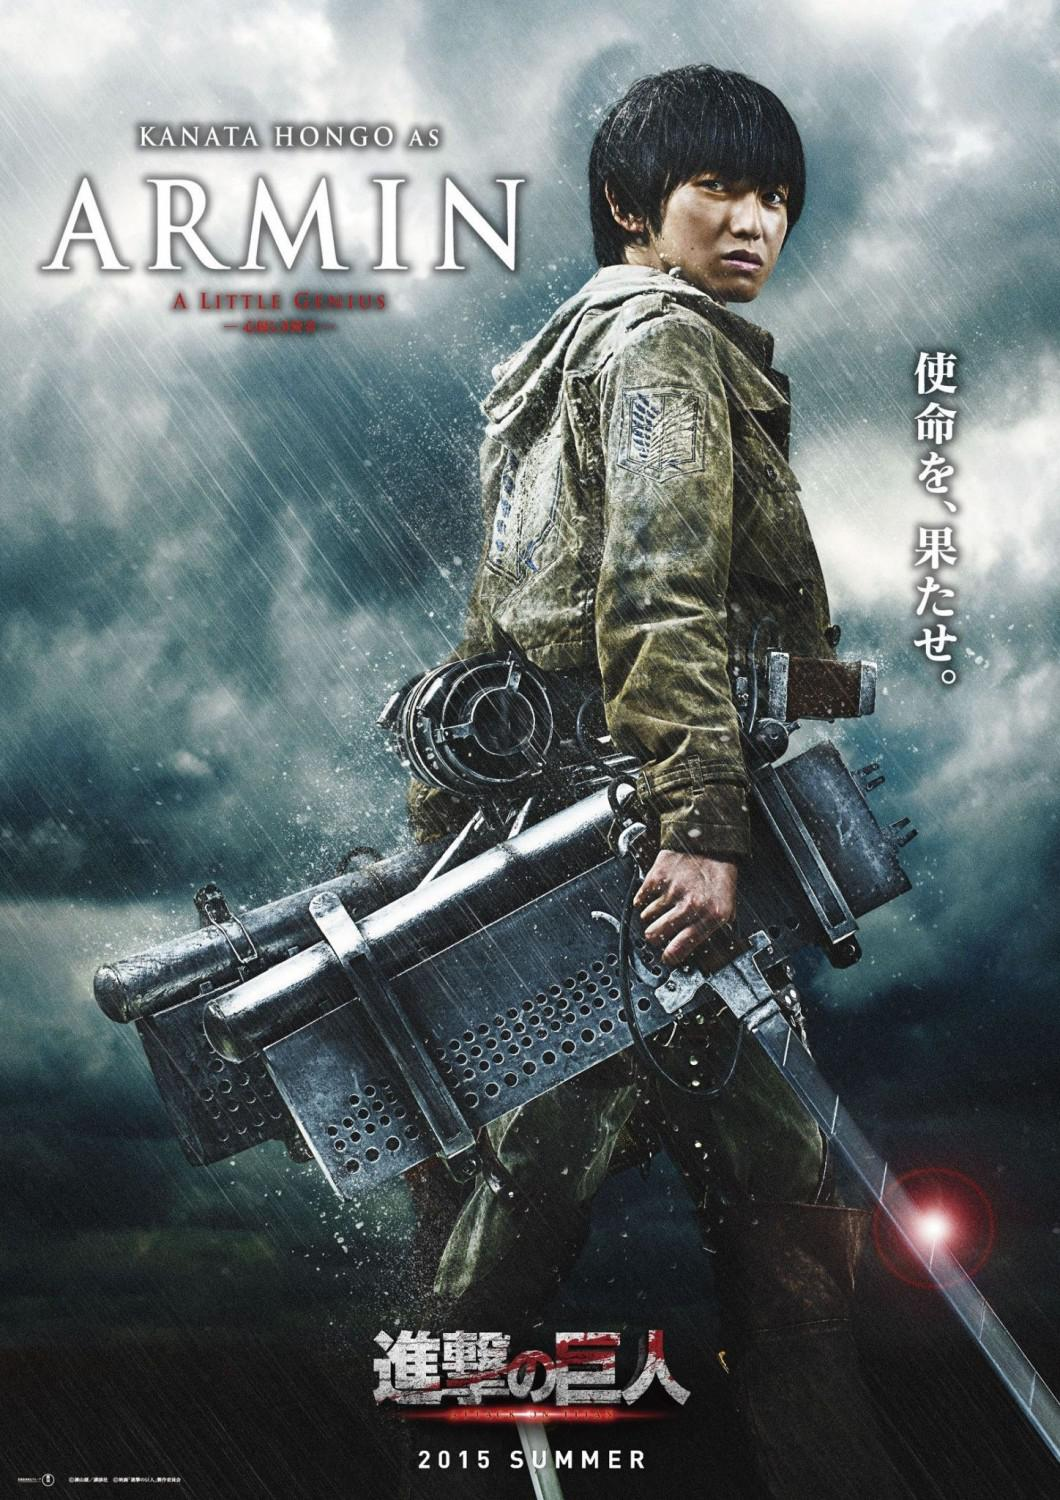 Attacco dei Giganti 1 - Shingeki no kyojin - Attack on Titan live action - Armin - Kanata Hongo